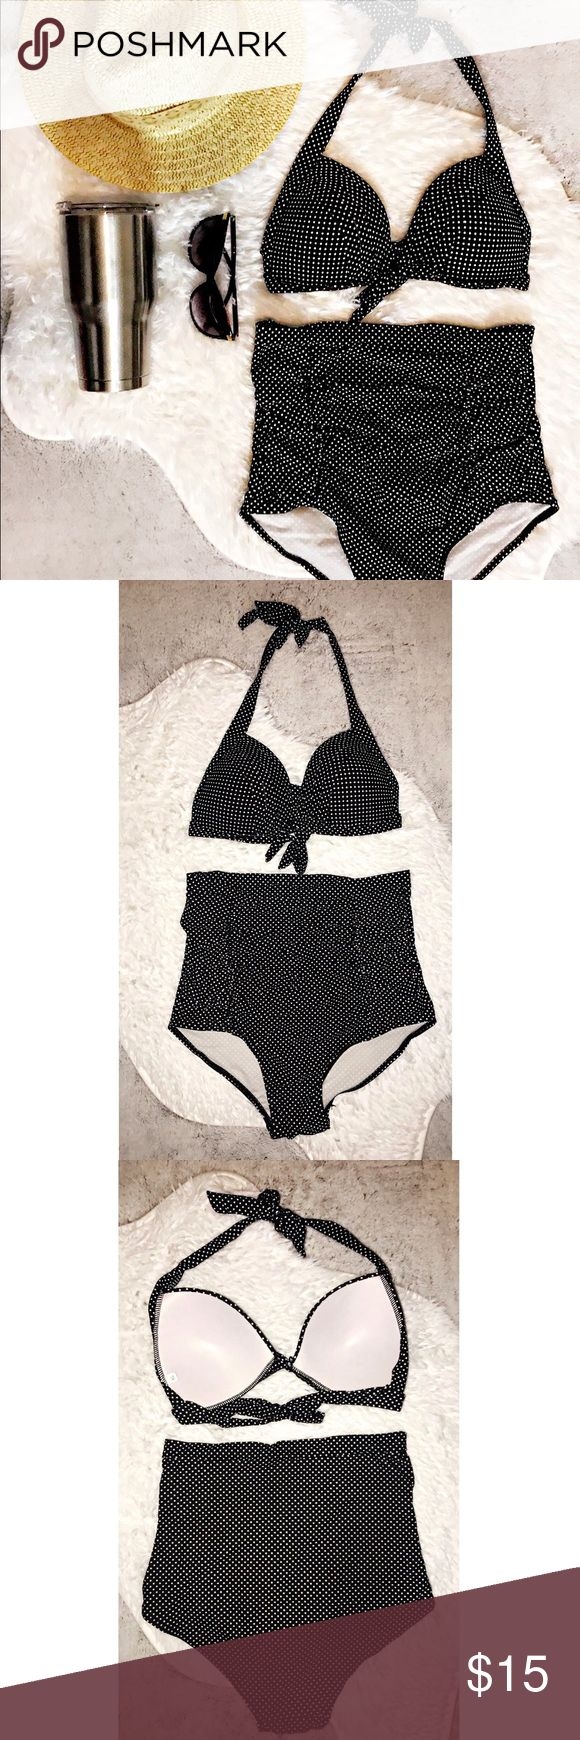 Black Polka Dot High Waisted Bikini Get a perfectly retro, beach-ready look with this black and white polka dot Monroe high-waisted bikini. Inspired by the famous (and fabulous) curves of Miss Monroe herself, these high-waisted bottoms will slim your waist, and tuck your tummy.  I purchased these and never wore. The tags have been removed but it's still brand new without tags. Top & Bottoms say XL. But definitely fit more like a Large or even a Medium. Top will fit up to a C Unique Vintage…